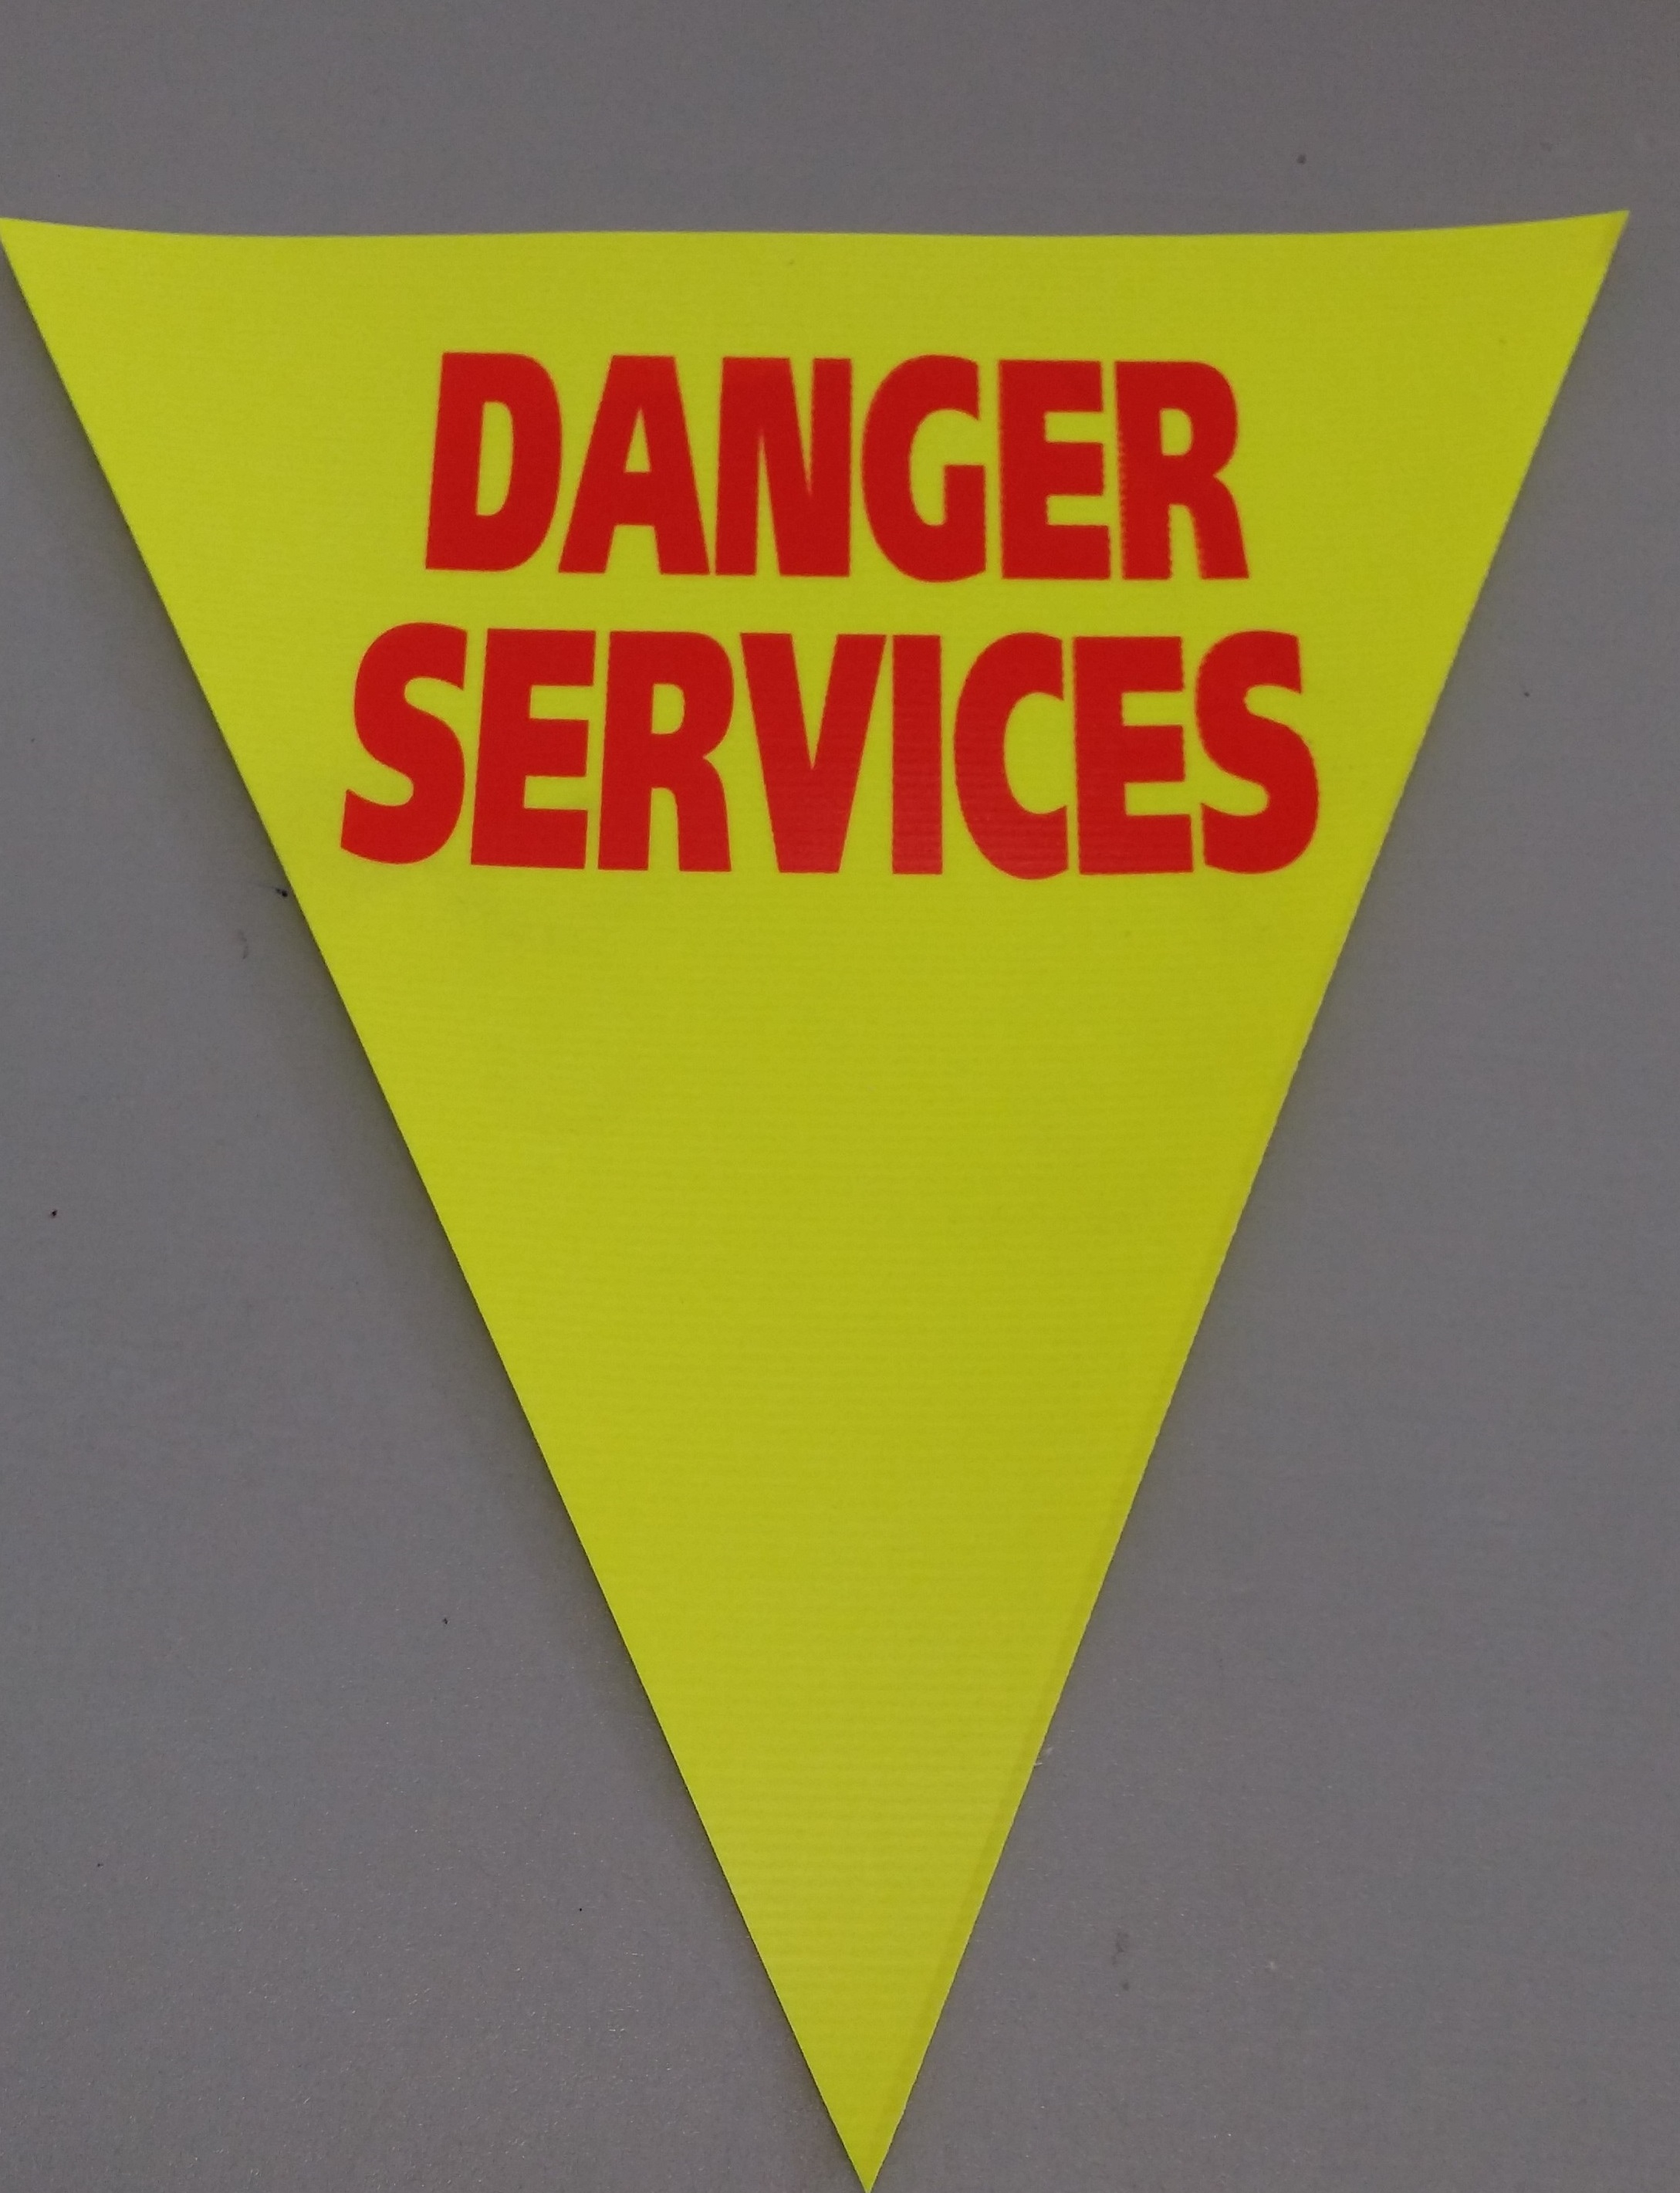 Danger Services (fluro yellow)